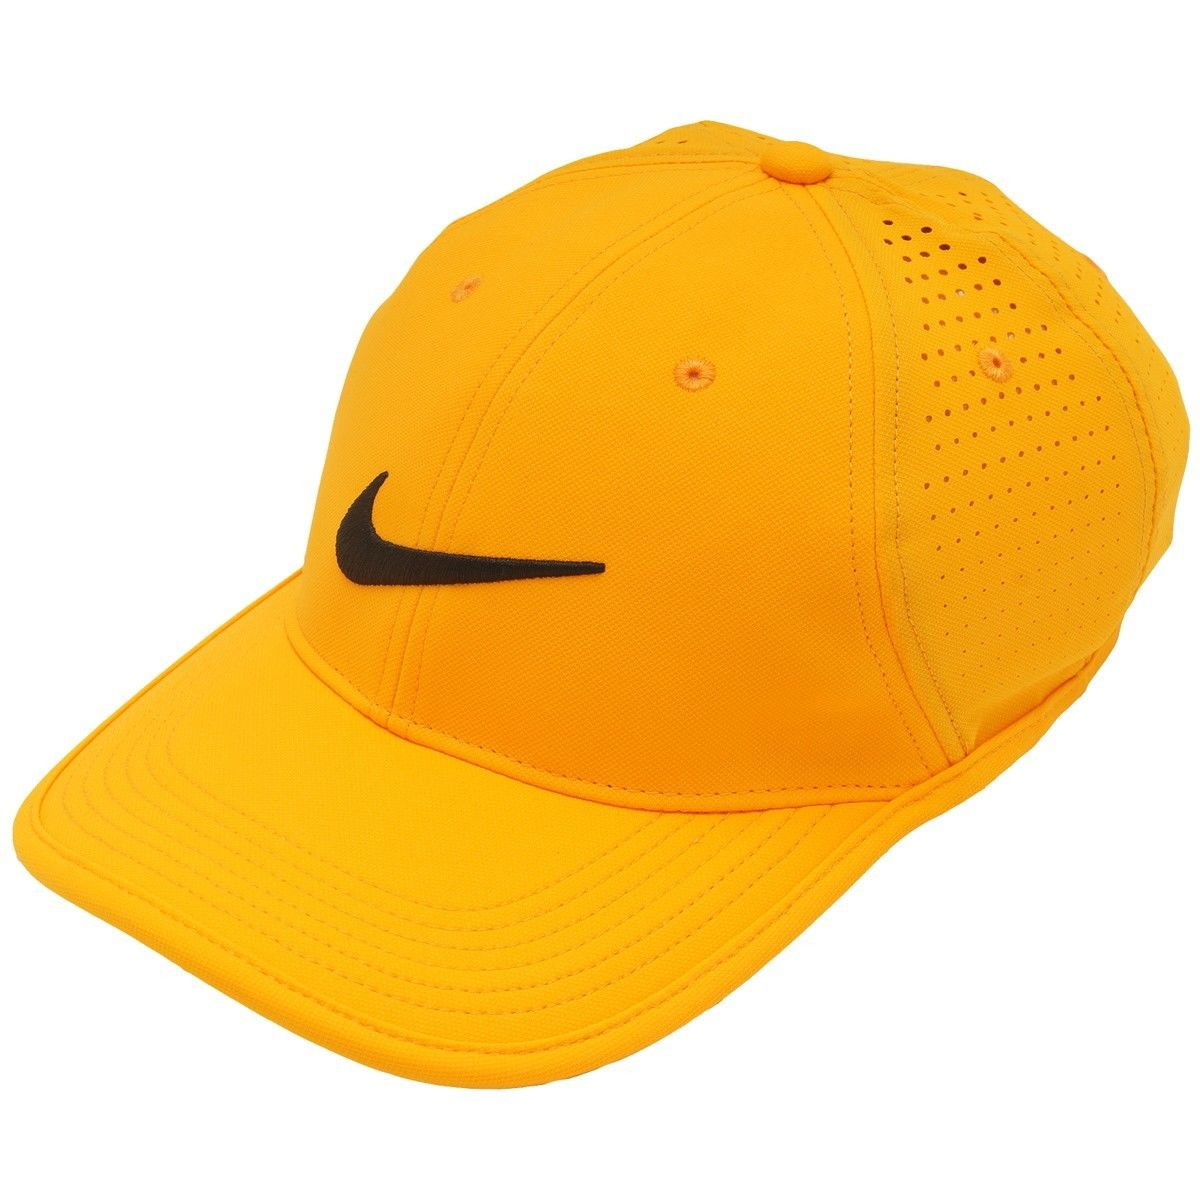 【ラス1】NIKE GOLF Ultra Light Tour Performance Cap(Vivit Orange)